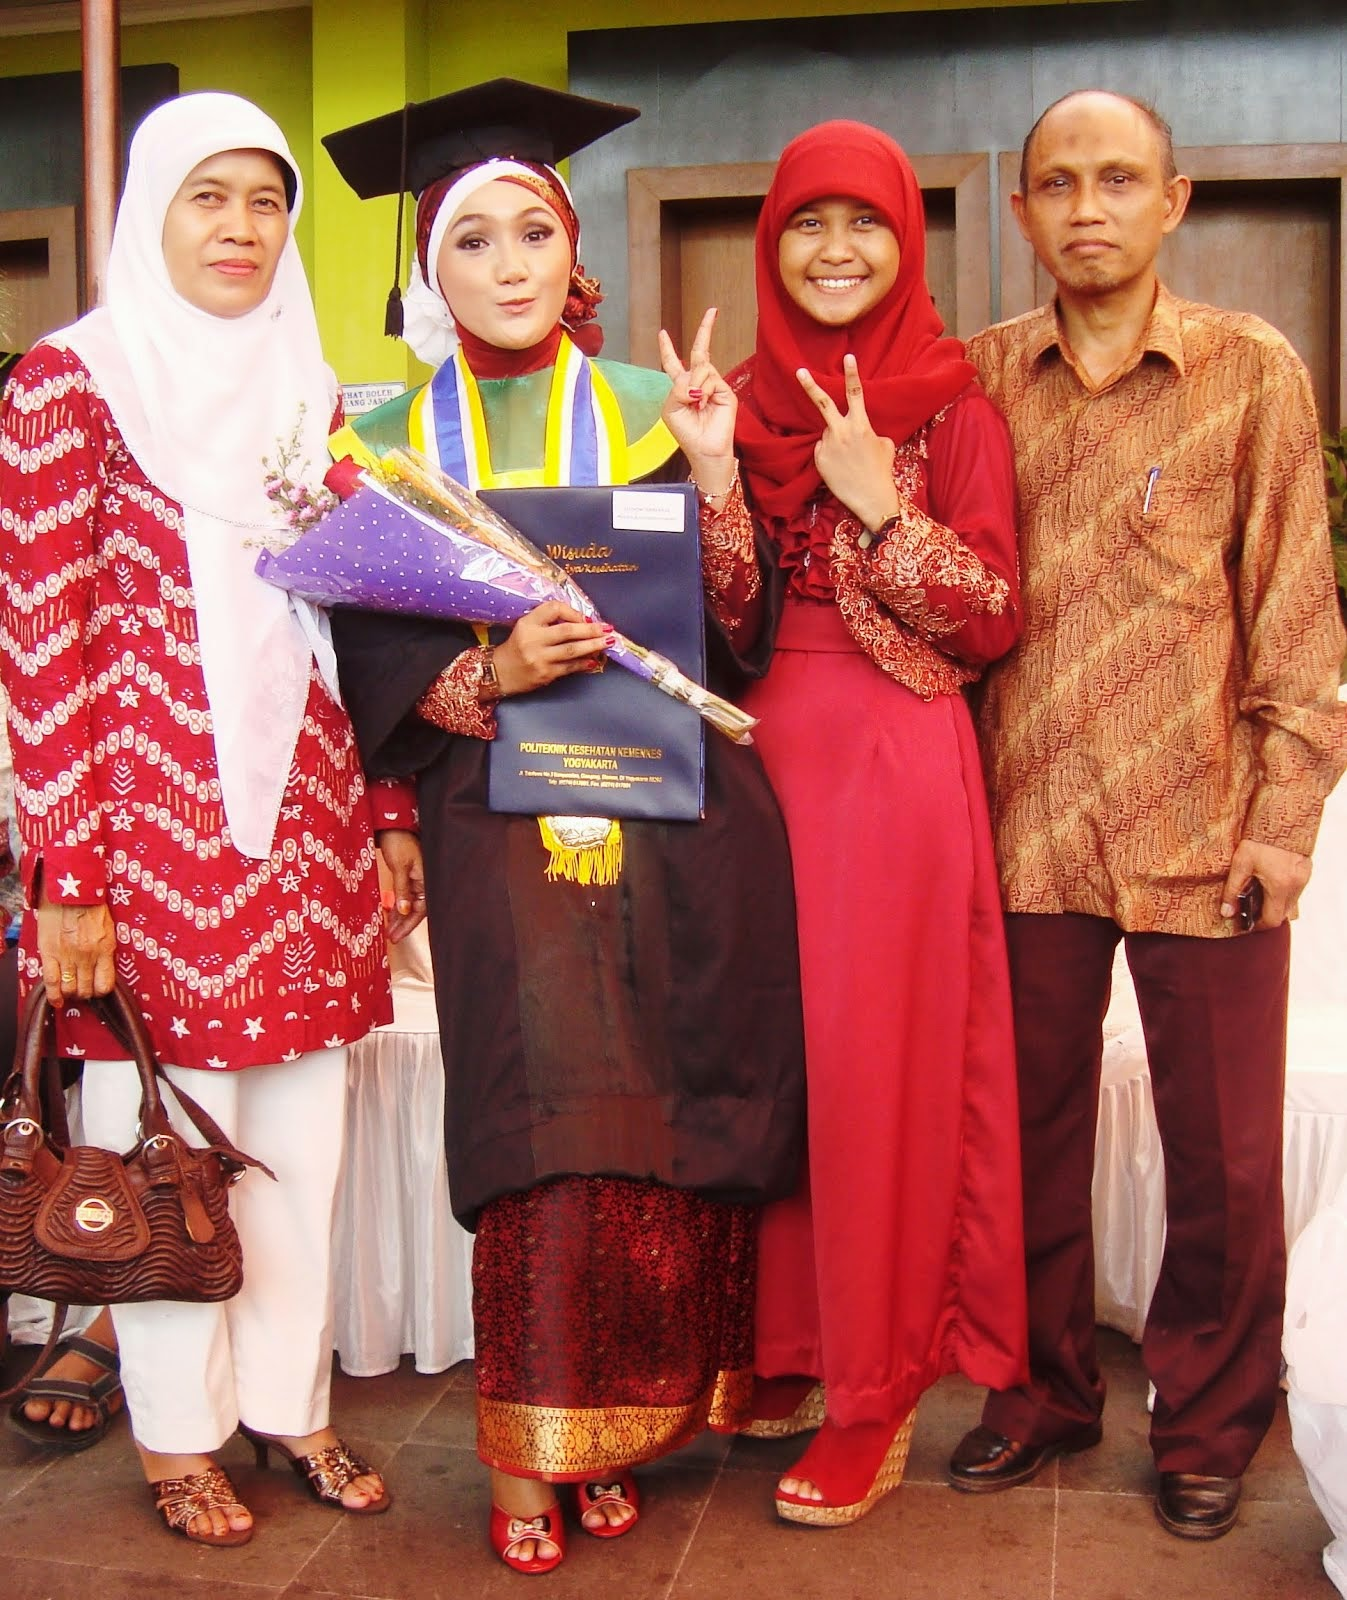 My Familly :)